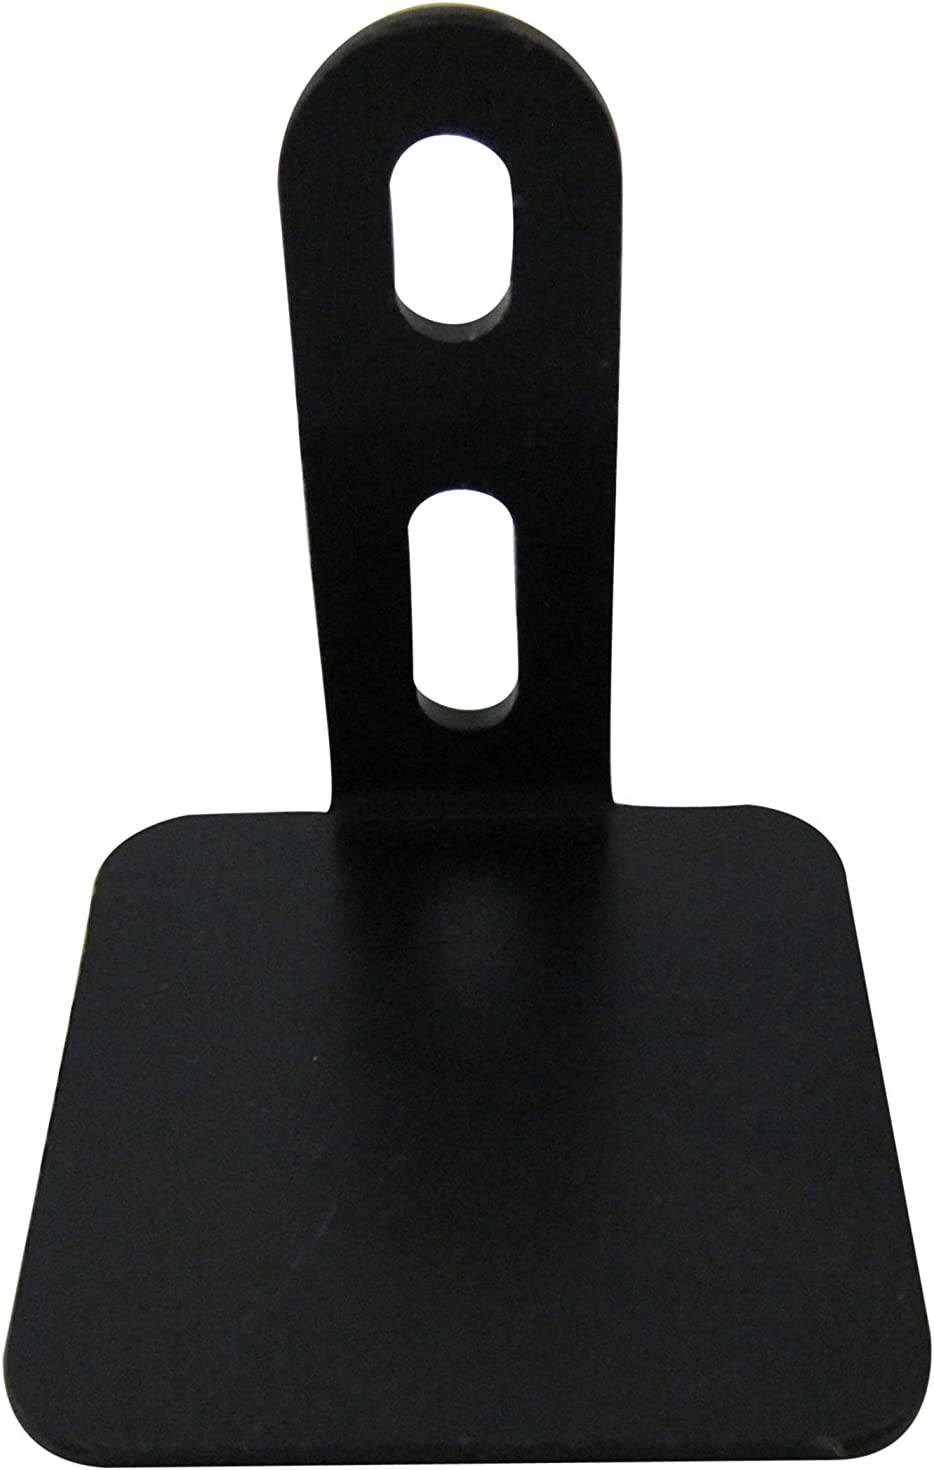 Goedrum 2PCS Electronic Drum Trigger Holder - San Diego Mall Max 47% OFF Mounting Bracket